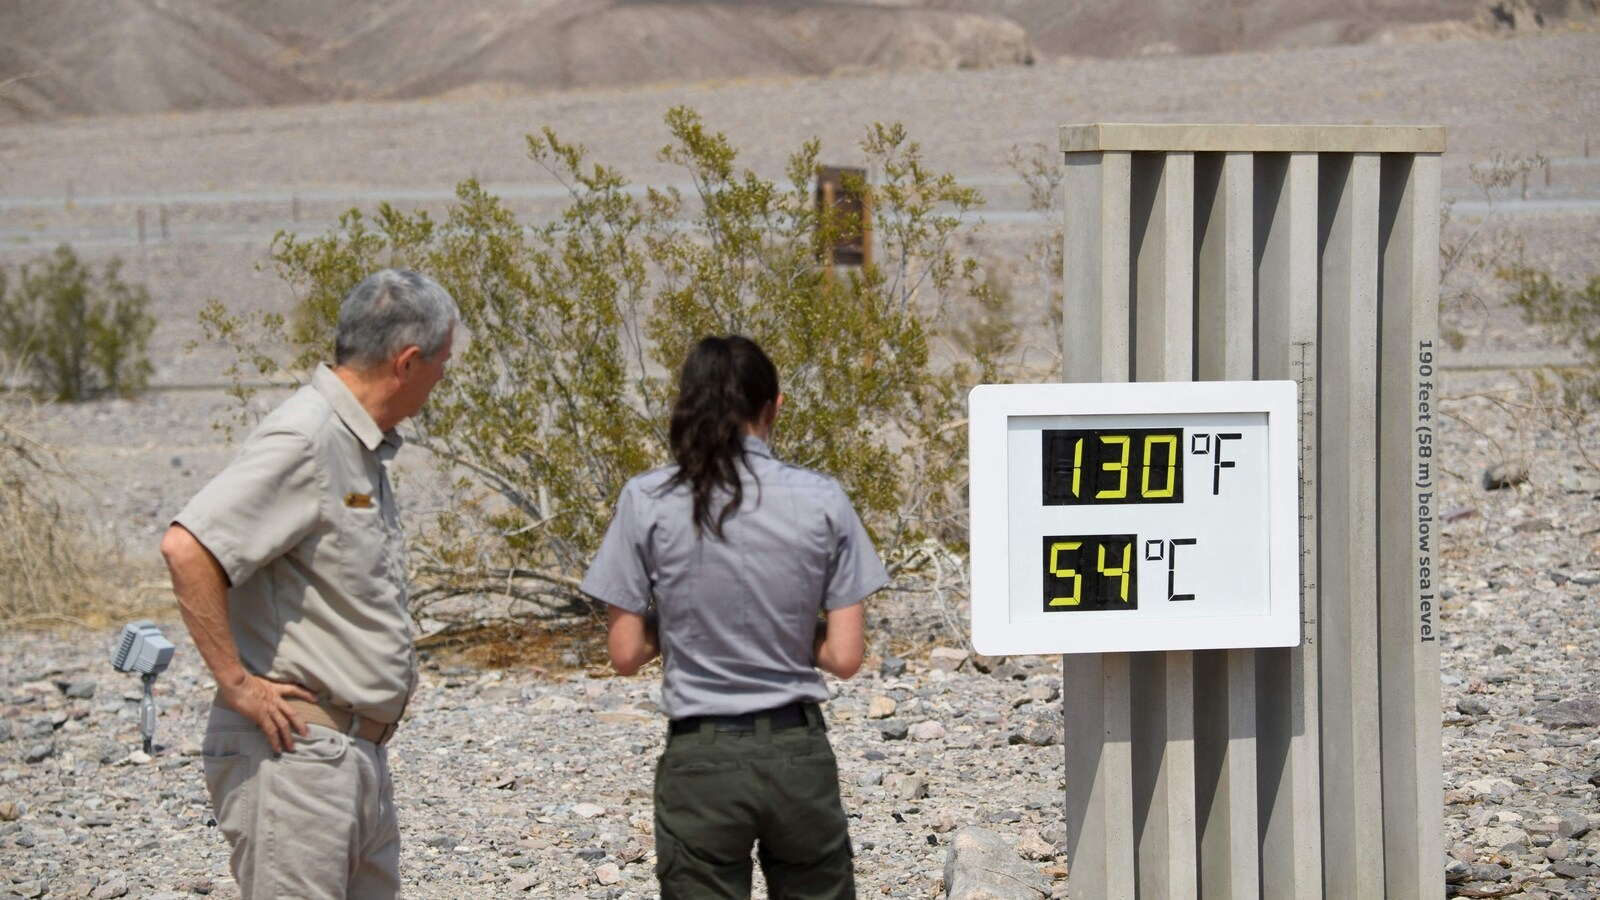 Photos: Western US braces for record heat wave